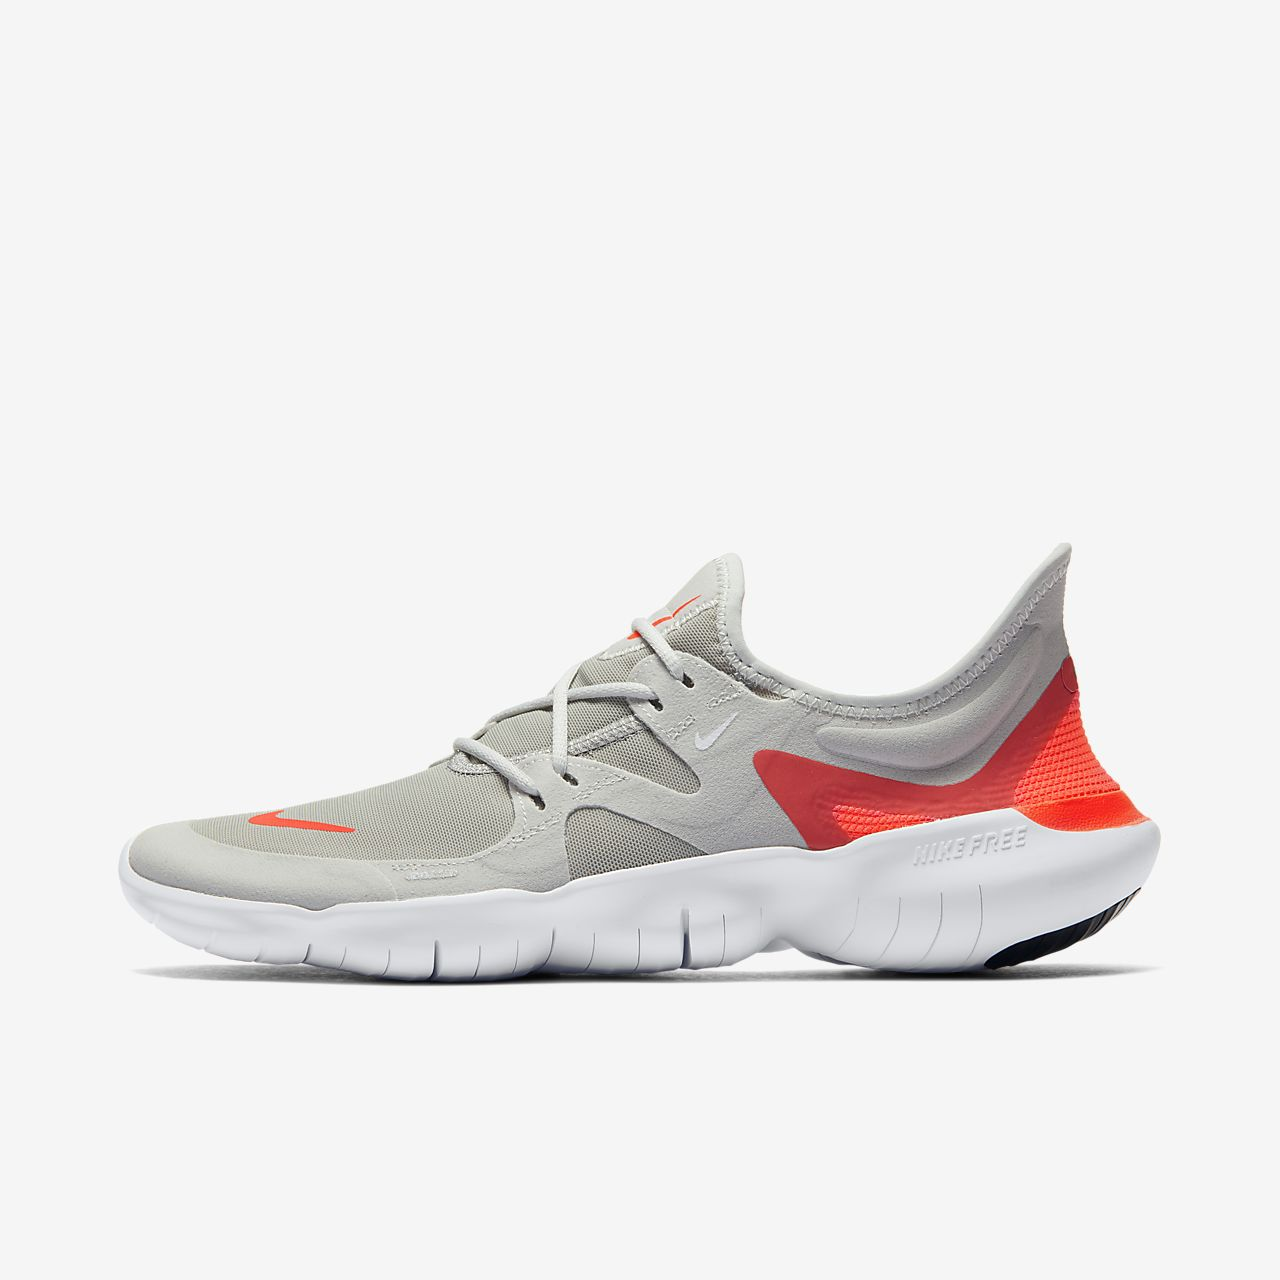 fresh styles purchase cheap professional sale Nike Free RN 5.0 Men's Running Shoe. Nike.com